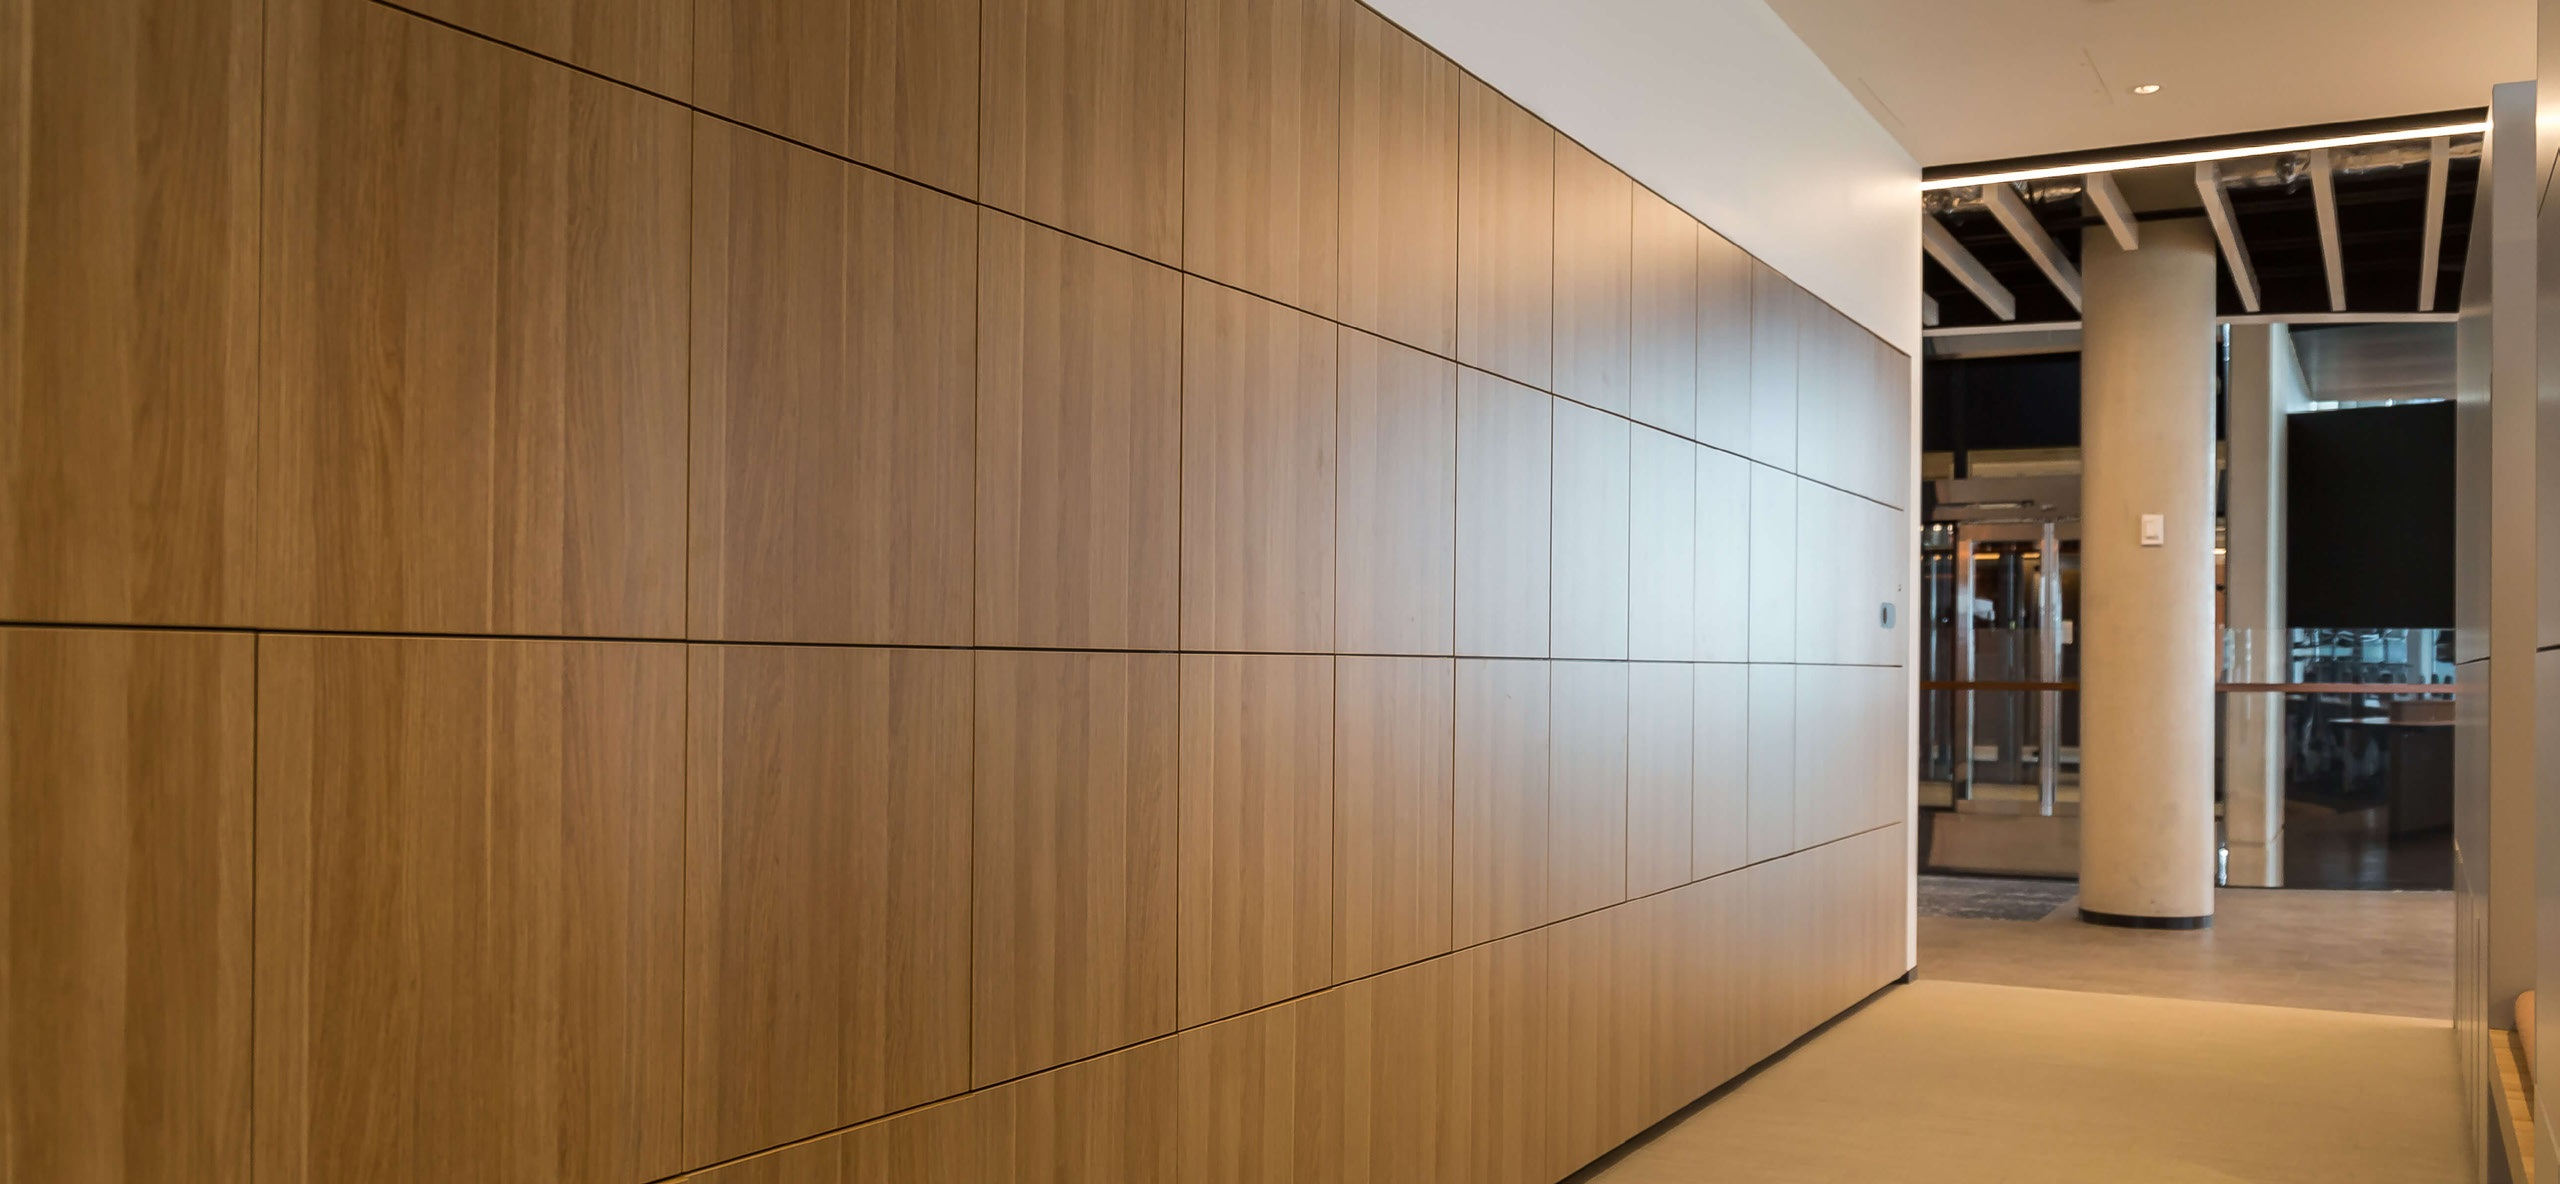 Touchless Lockers that match office decor